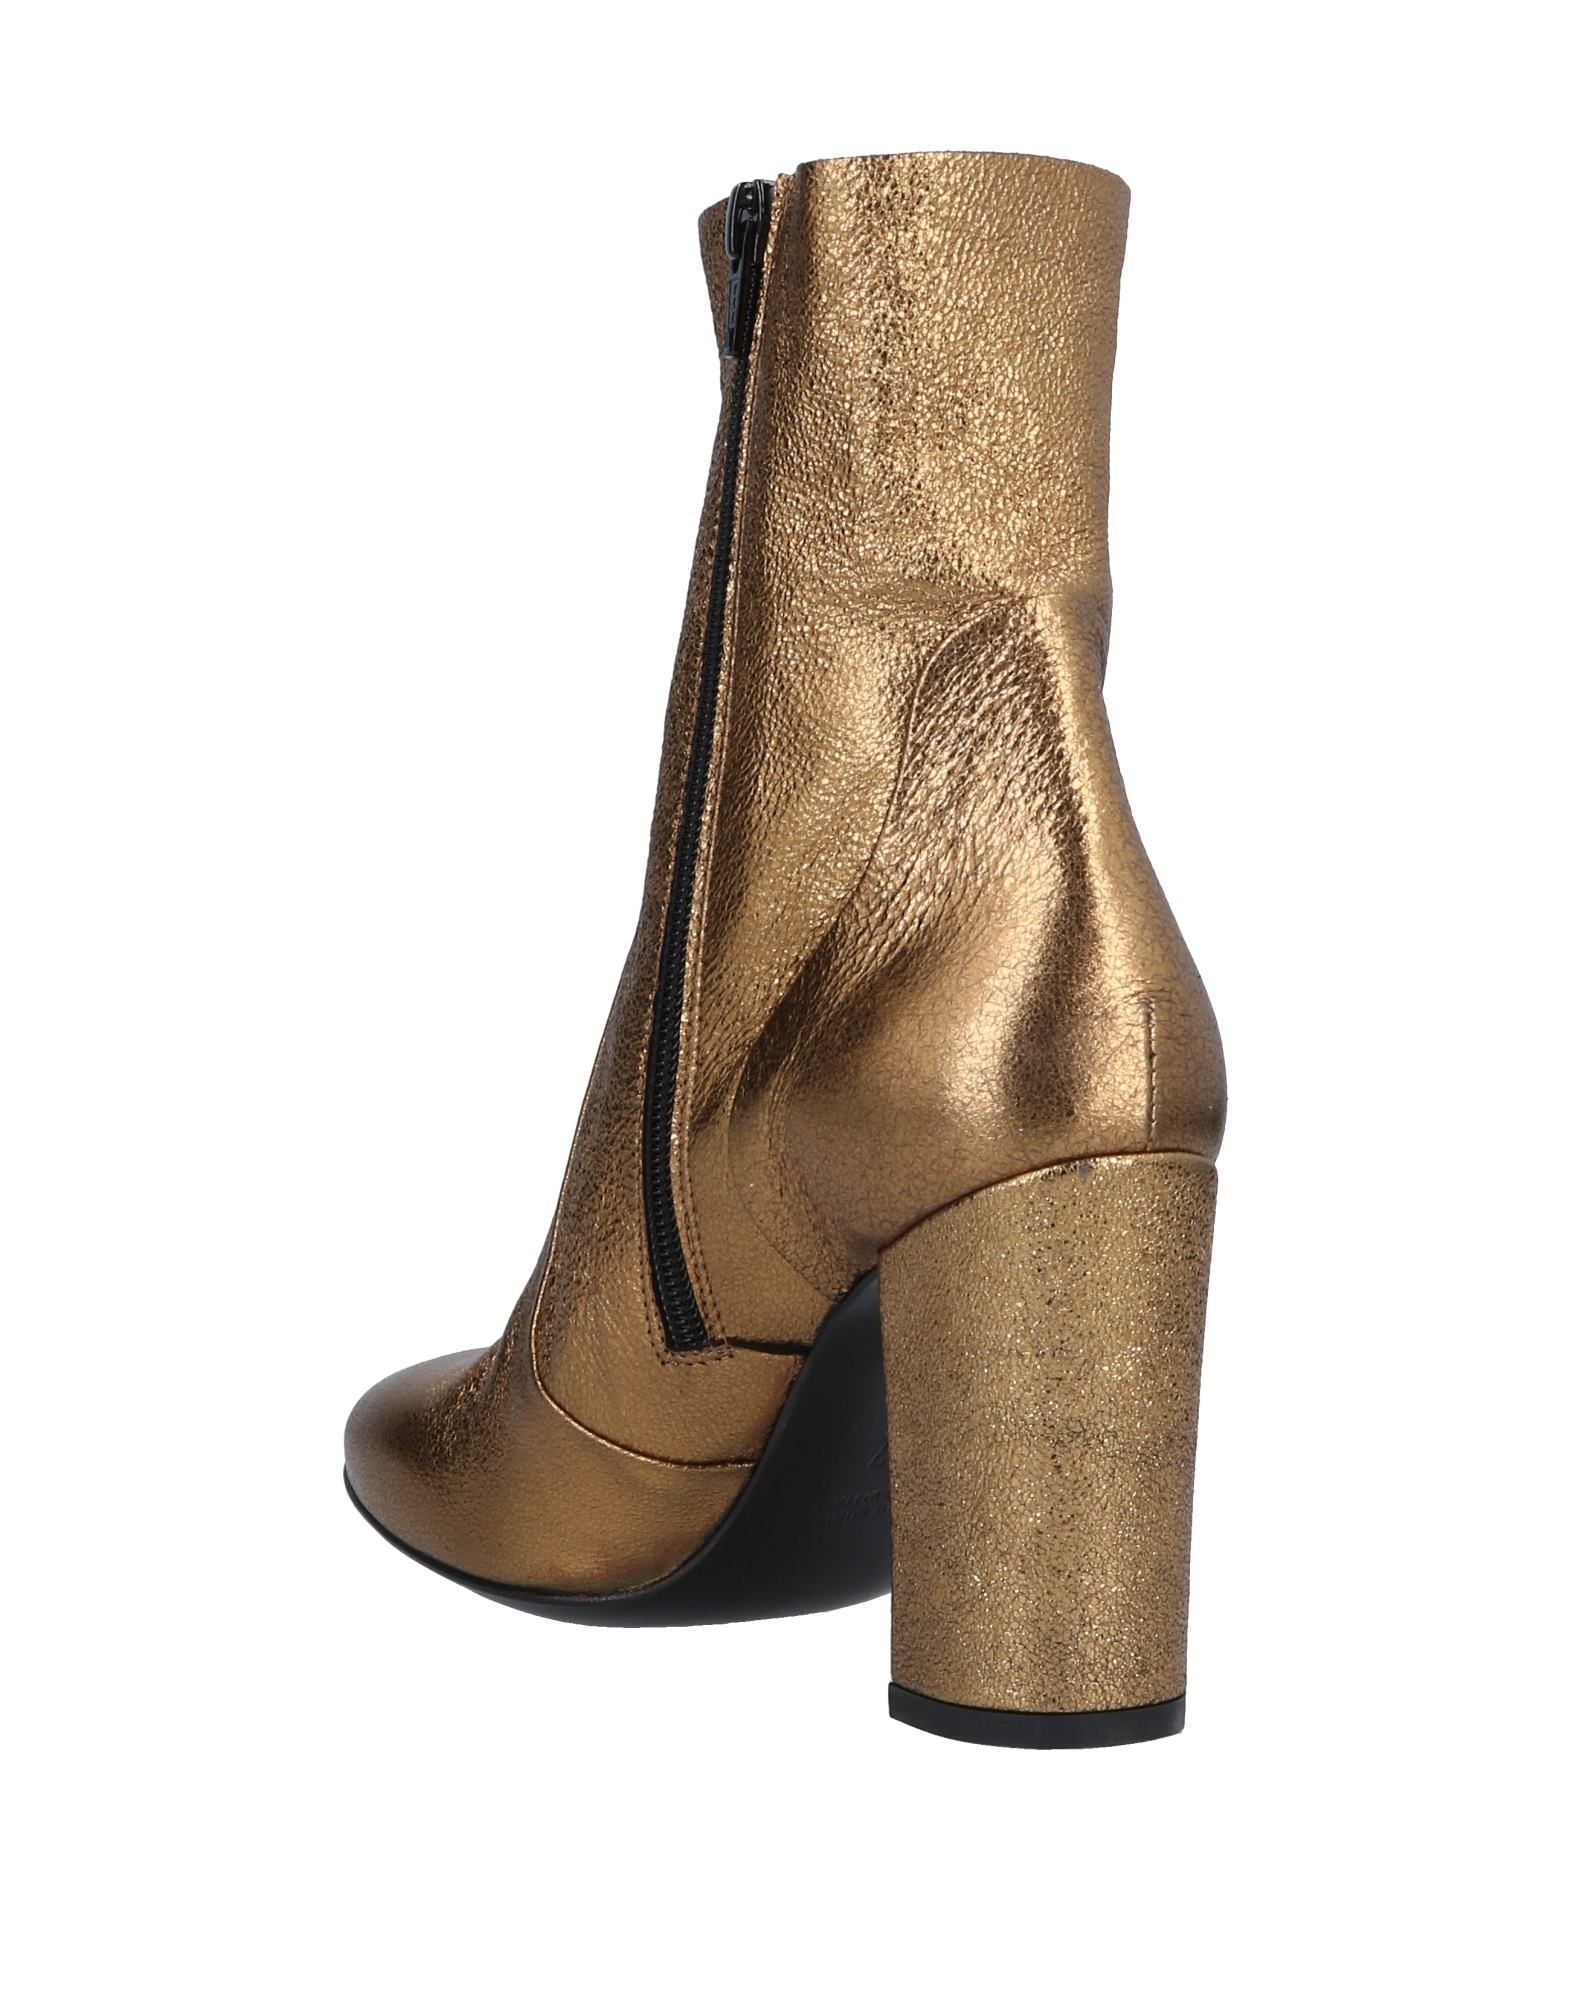 Strategia Ankle Ankle Ankle Boot - Women Strategia Ankle Boots online on  United Kingdom - 11570775MK 946172